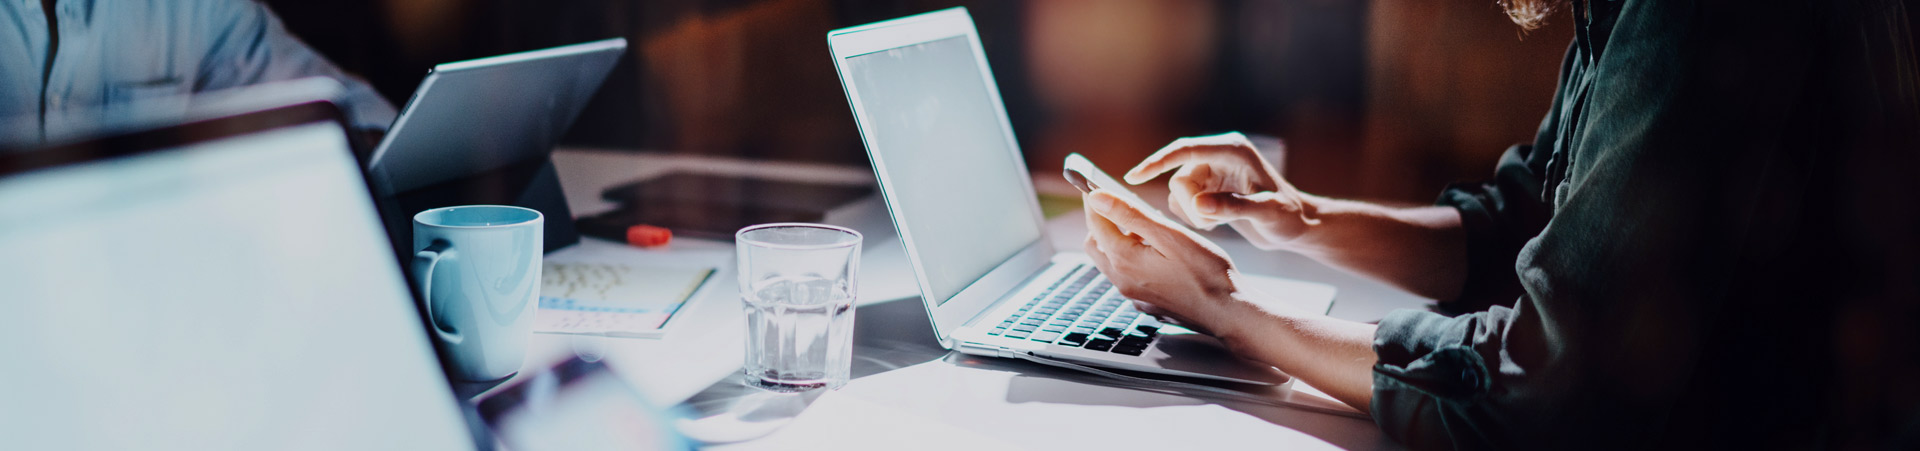 Banner image, woman working on her phone and laptop